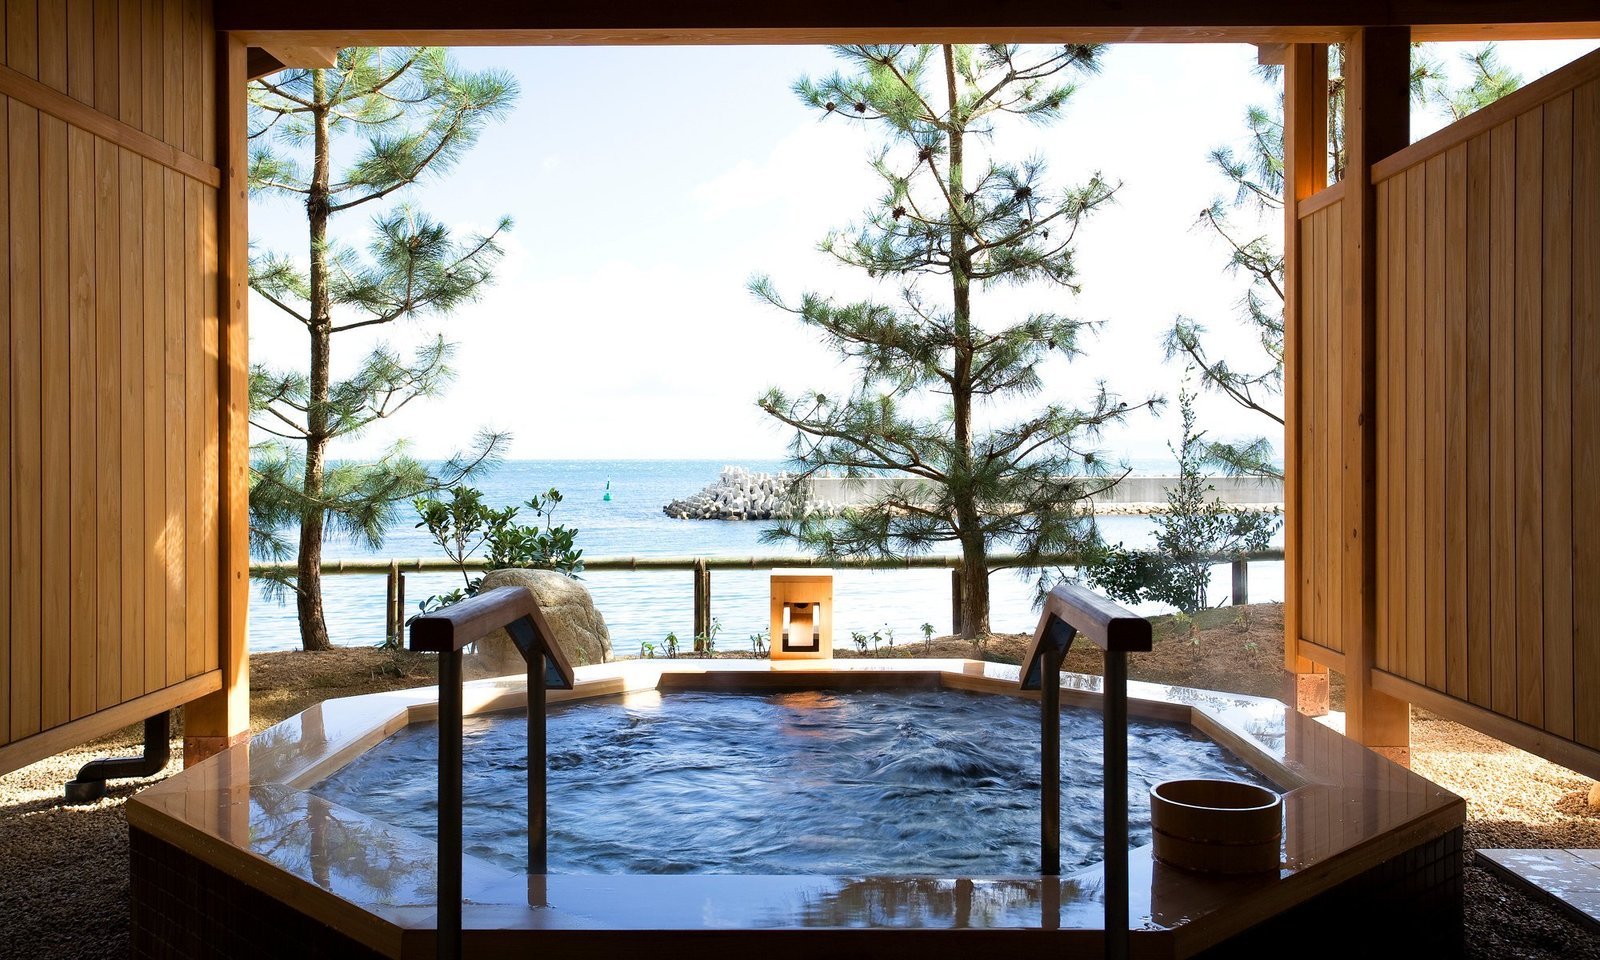 Outdoor, Hot Tub Pools, Tubs, Shower, and Trees  Villa Rakuen